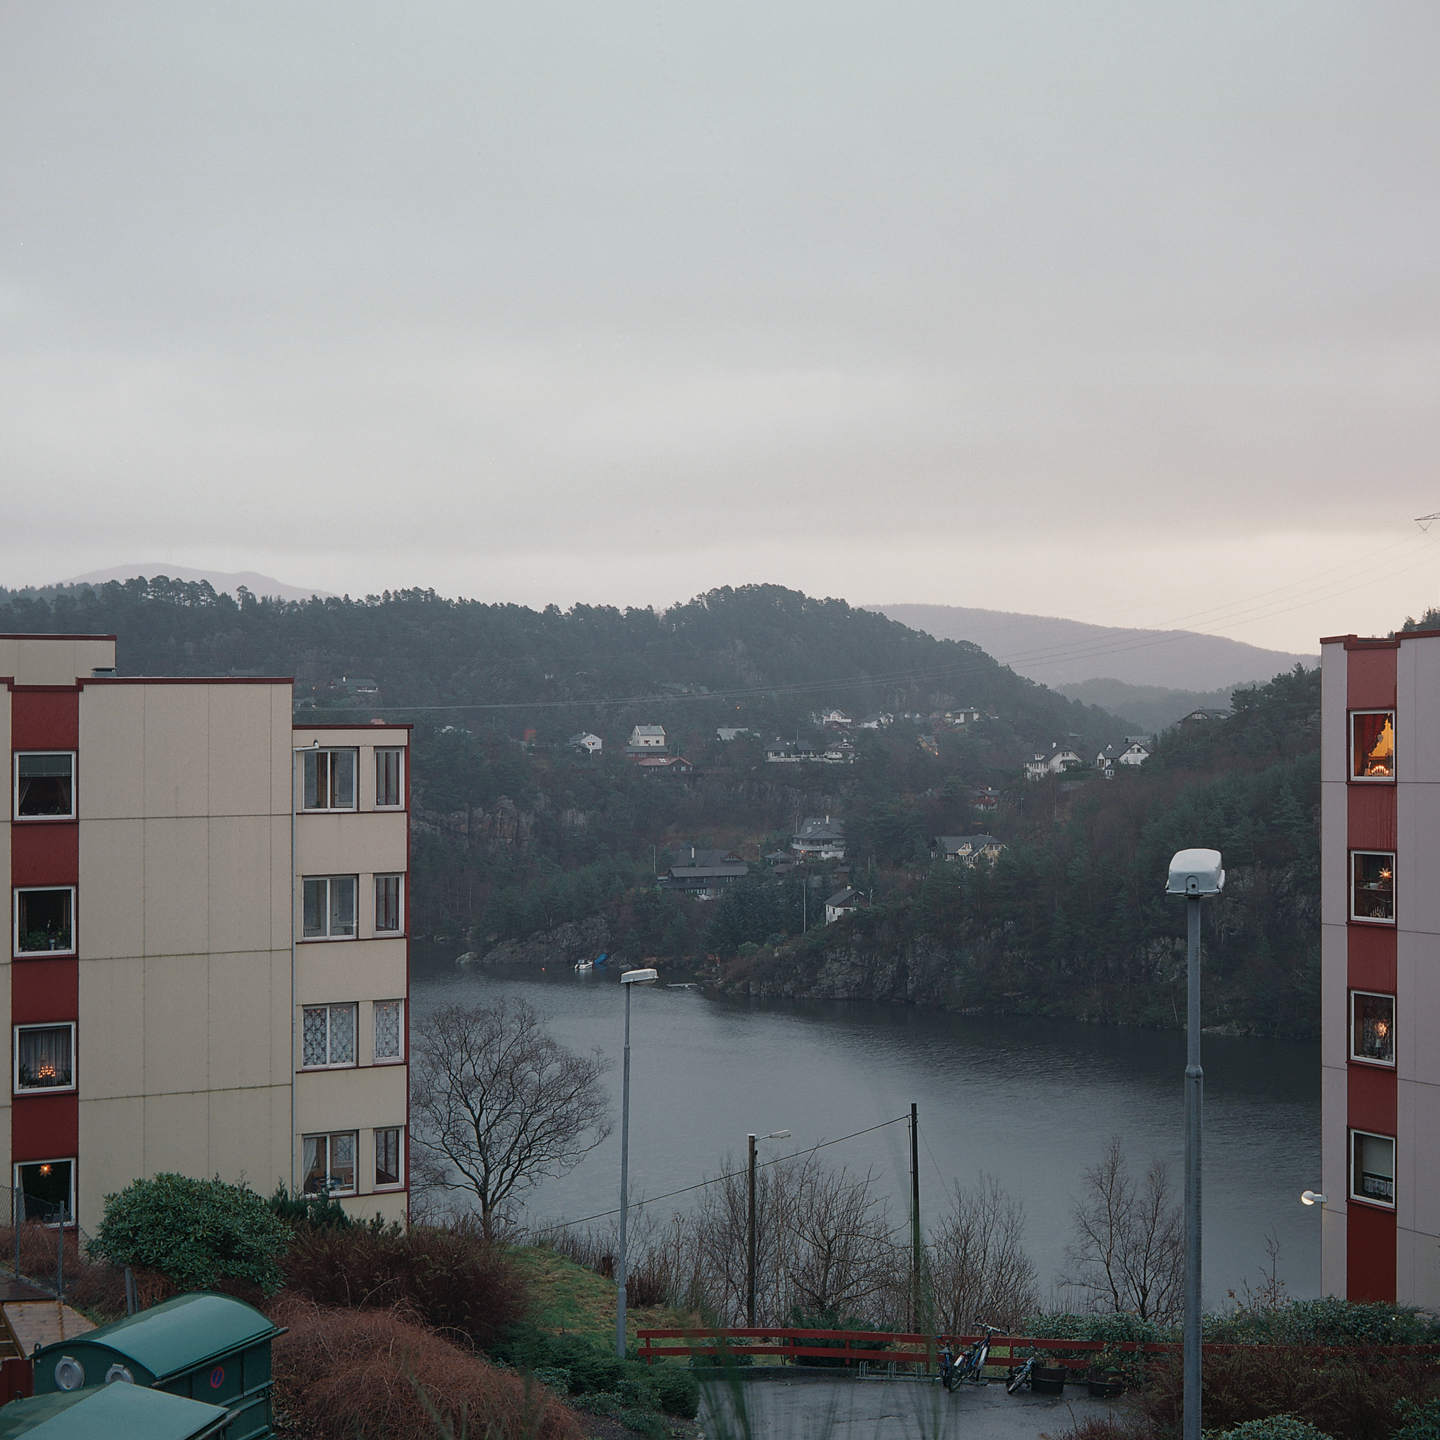 Parts of two apartment buildings, view of hills and water between them.